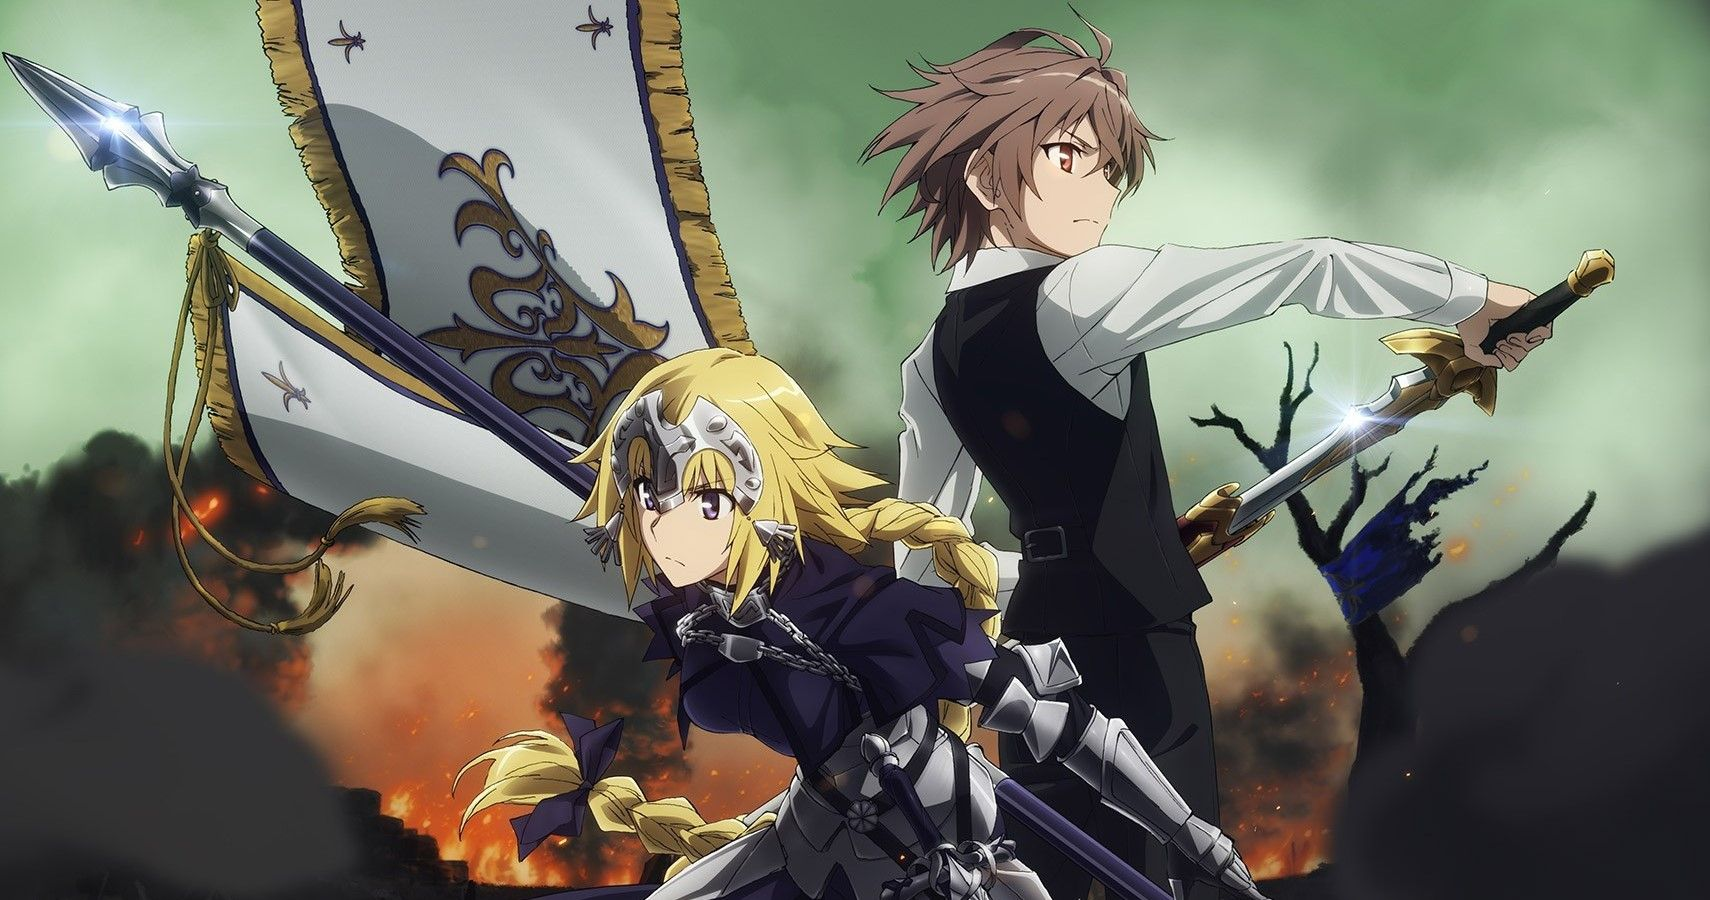 10 Strongest Characters in Fate/Apocrypha, Ranked | CBR